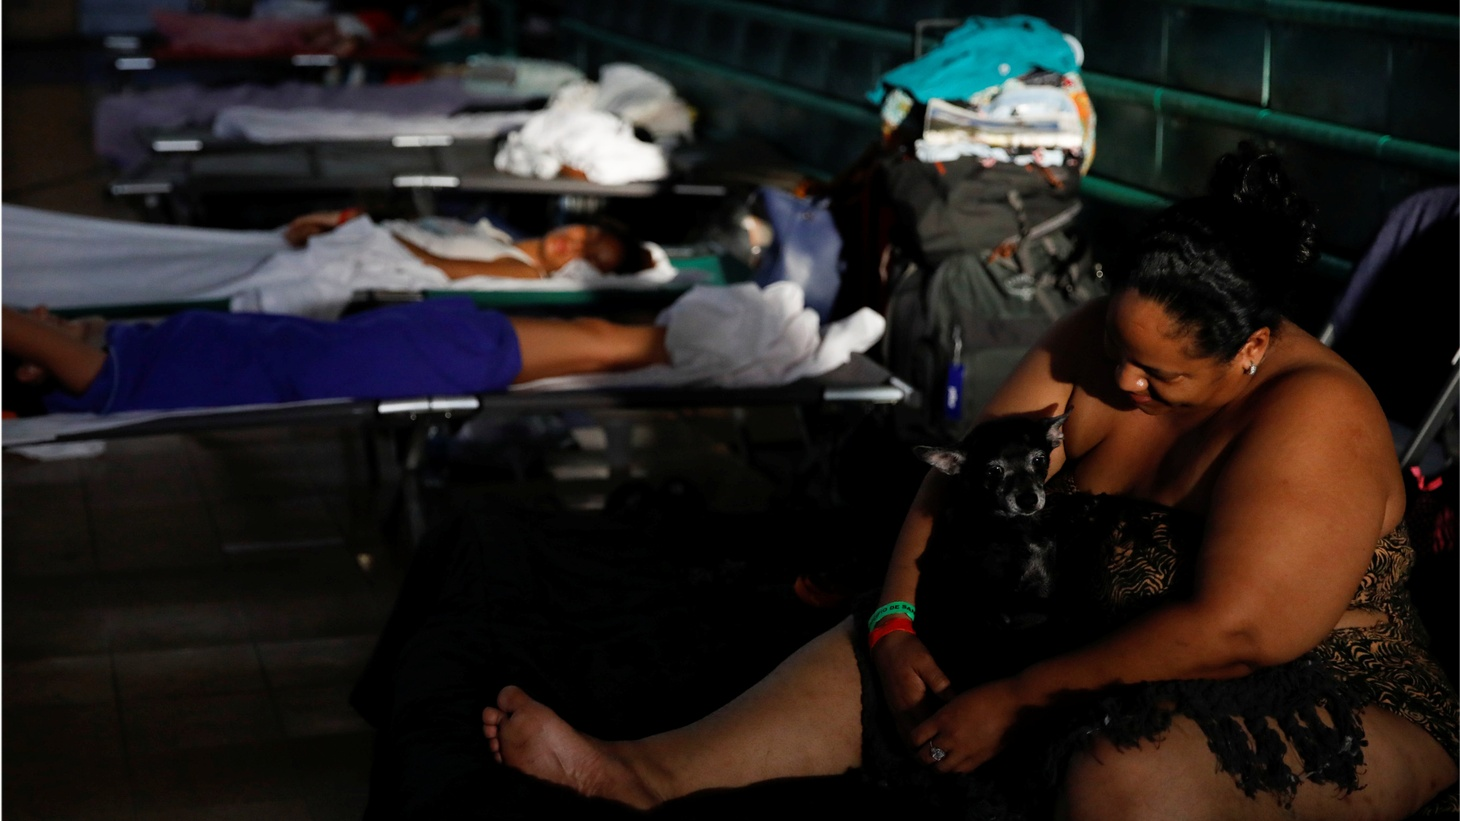 Nearly a week after Hurricane Maria left the island, Puerto Rico's governor is warning of a humanitarian crisis. Power is in very short supply. So is potable water. And relief efforts are just getting started.